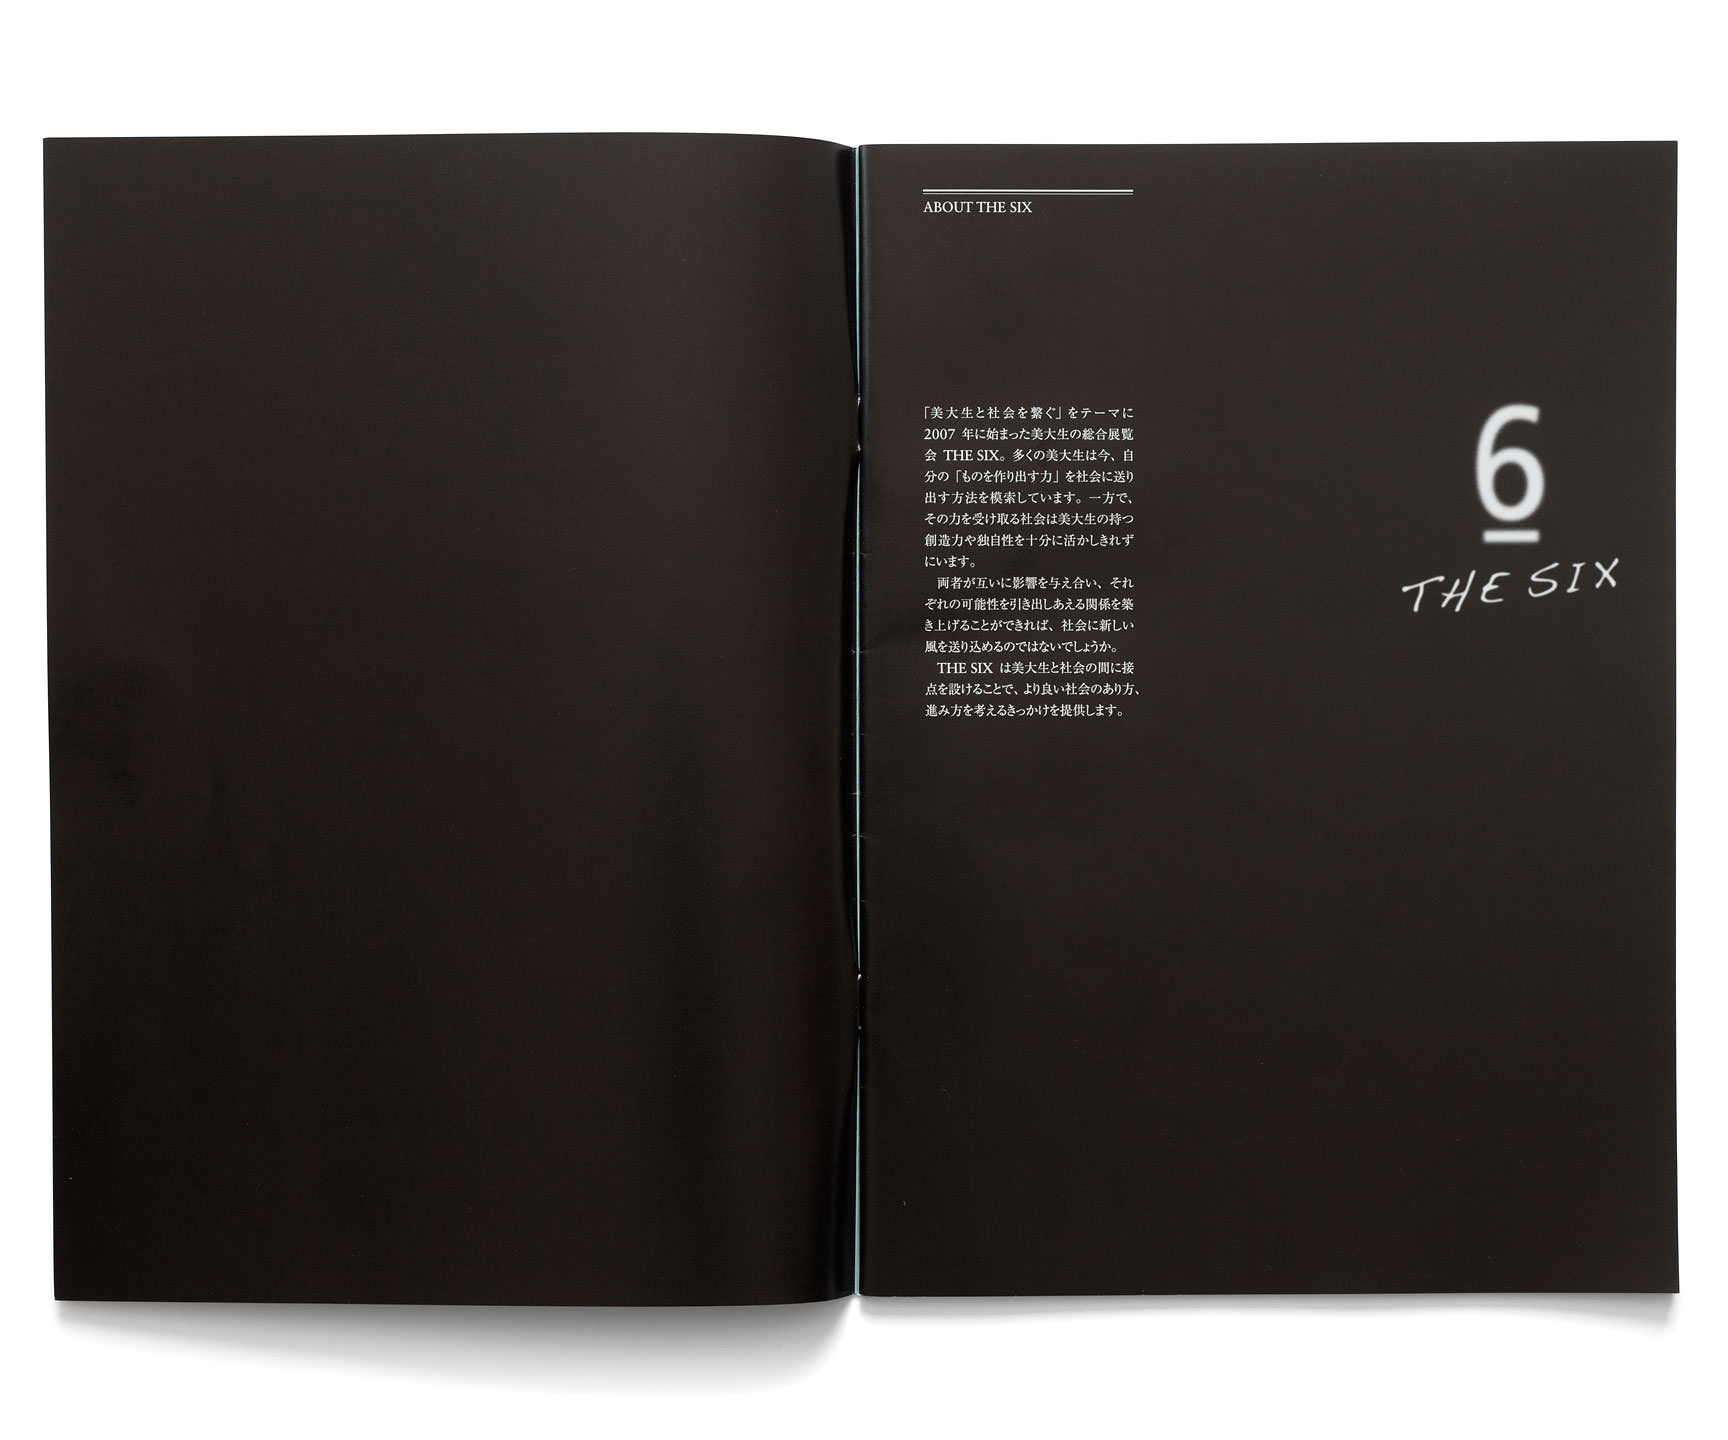 The Six 2010 Catalog